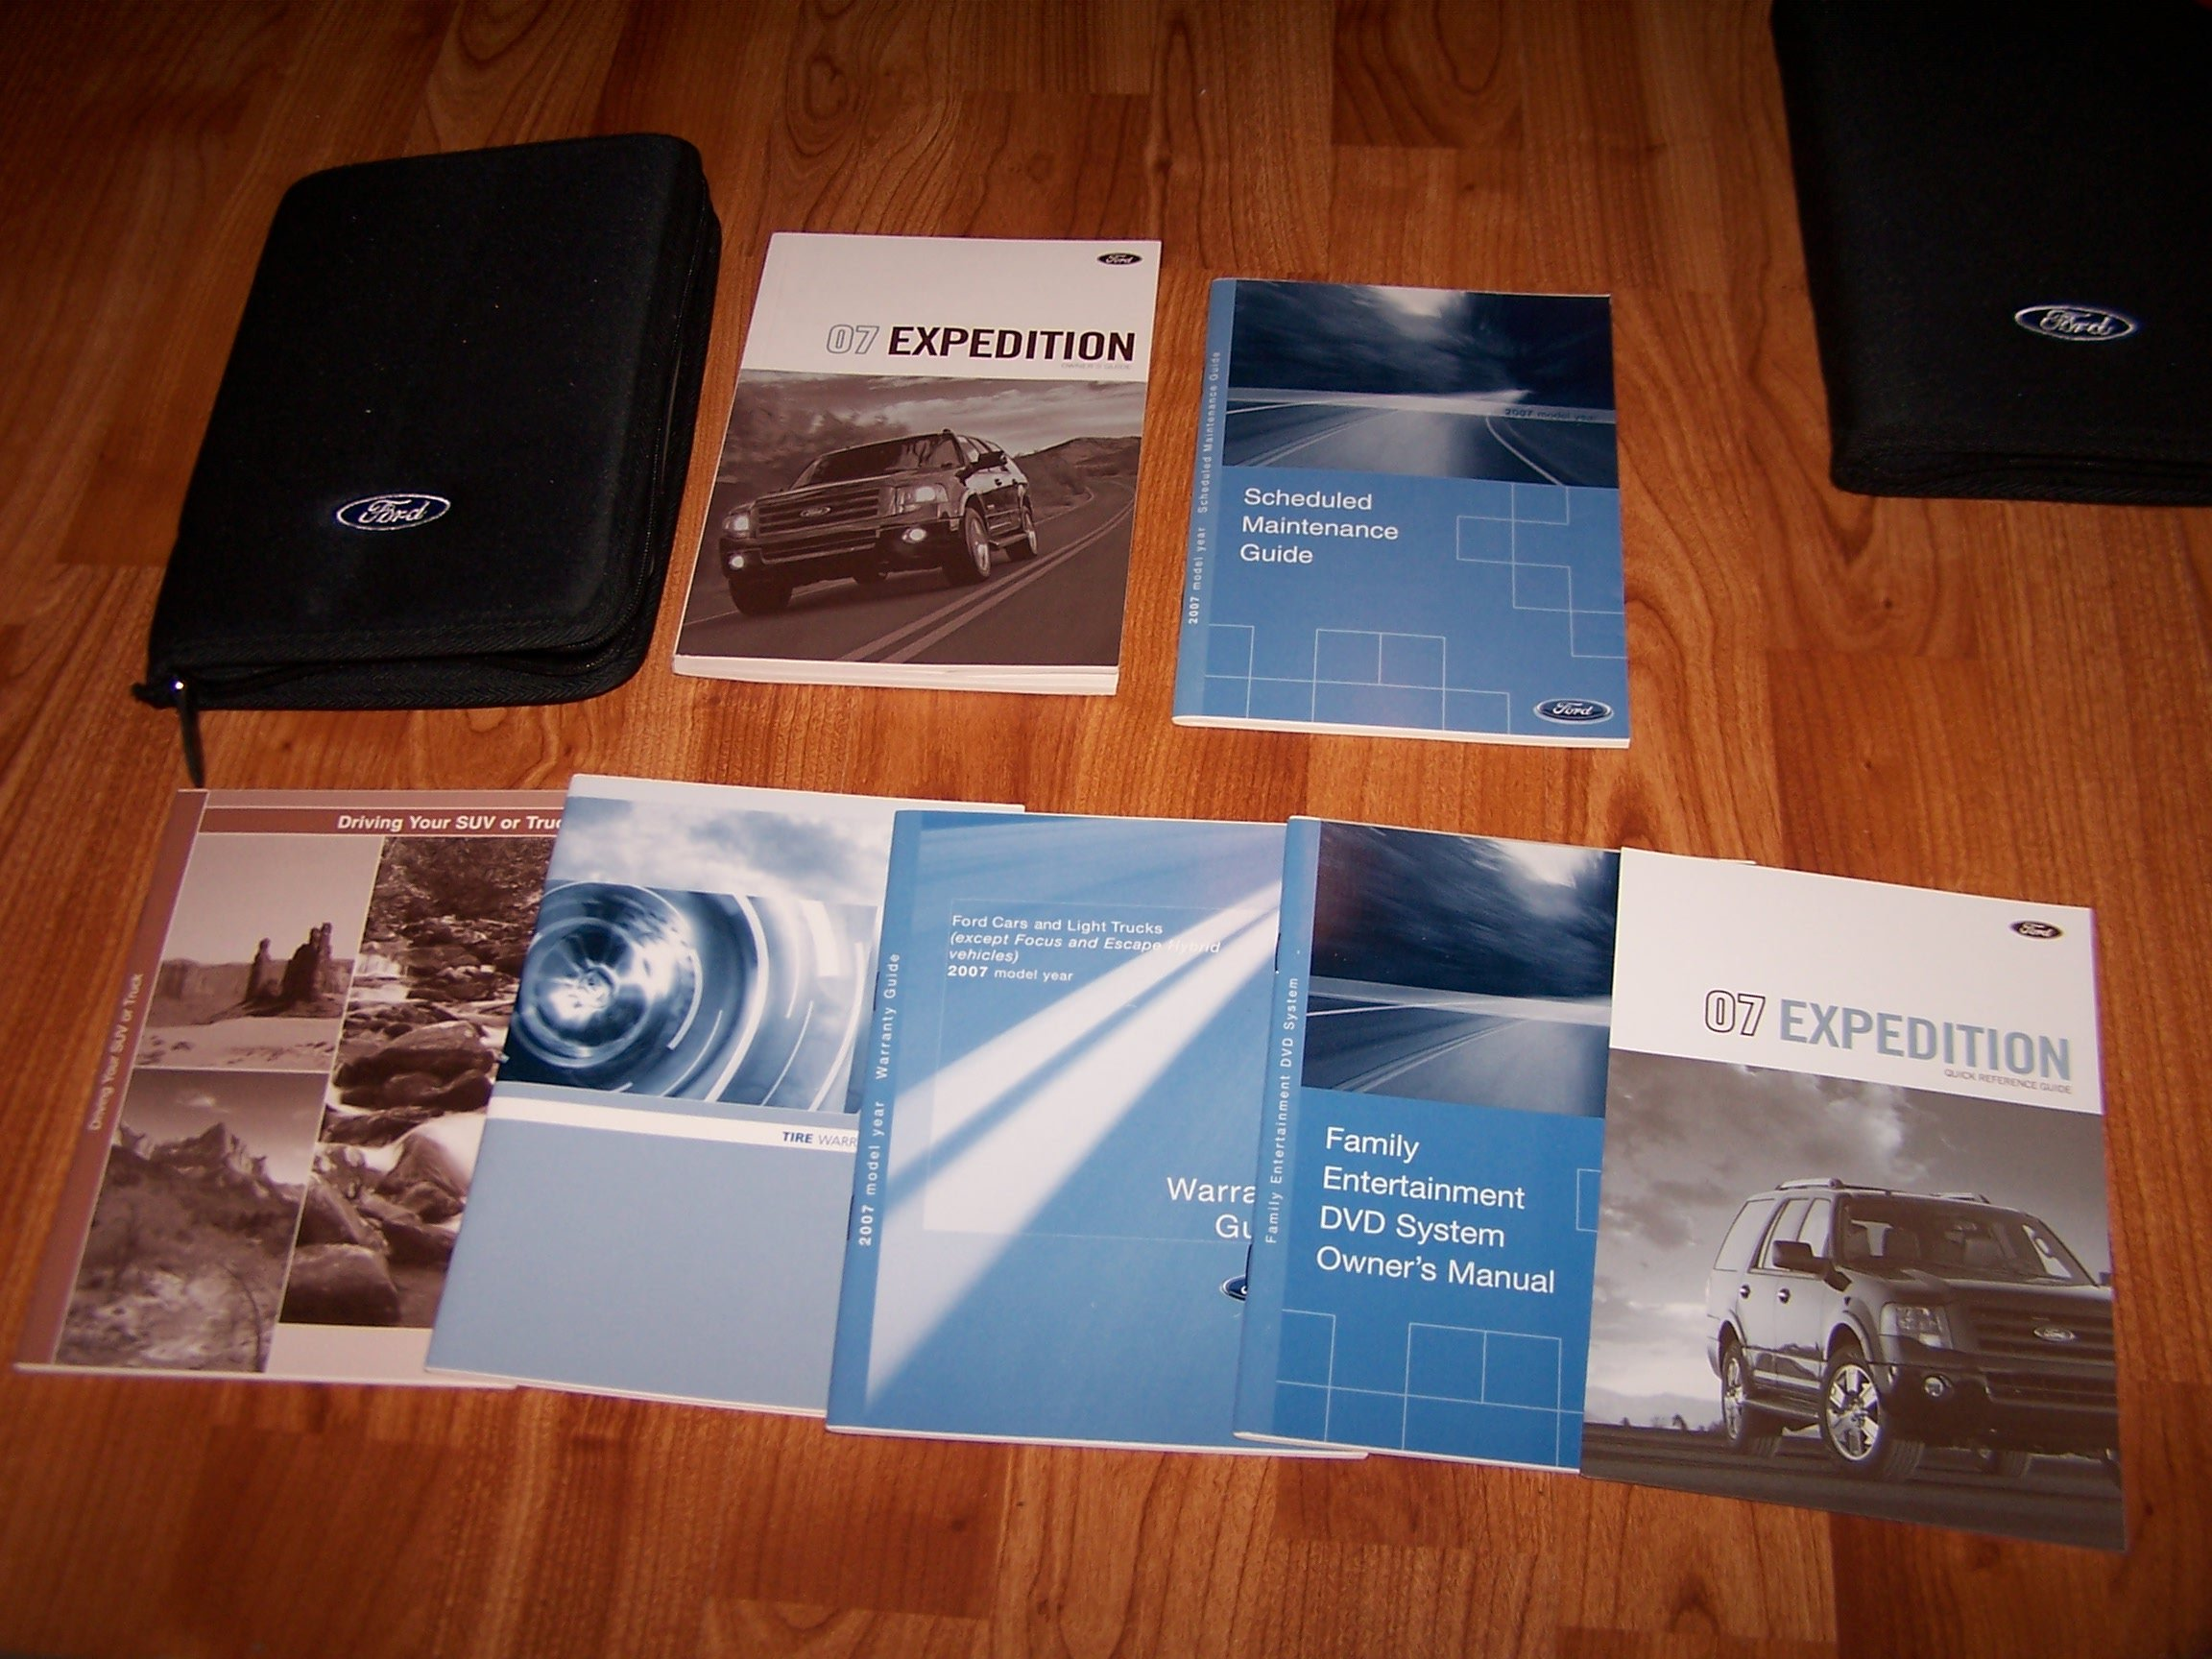 2007 ford expedition owners manual ford motor company amazon com rh amazon com Ford F-250 Entertainment System Ford Mustang Entertainment System